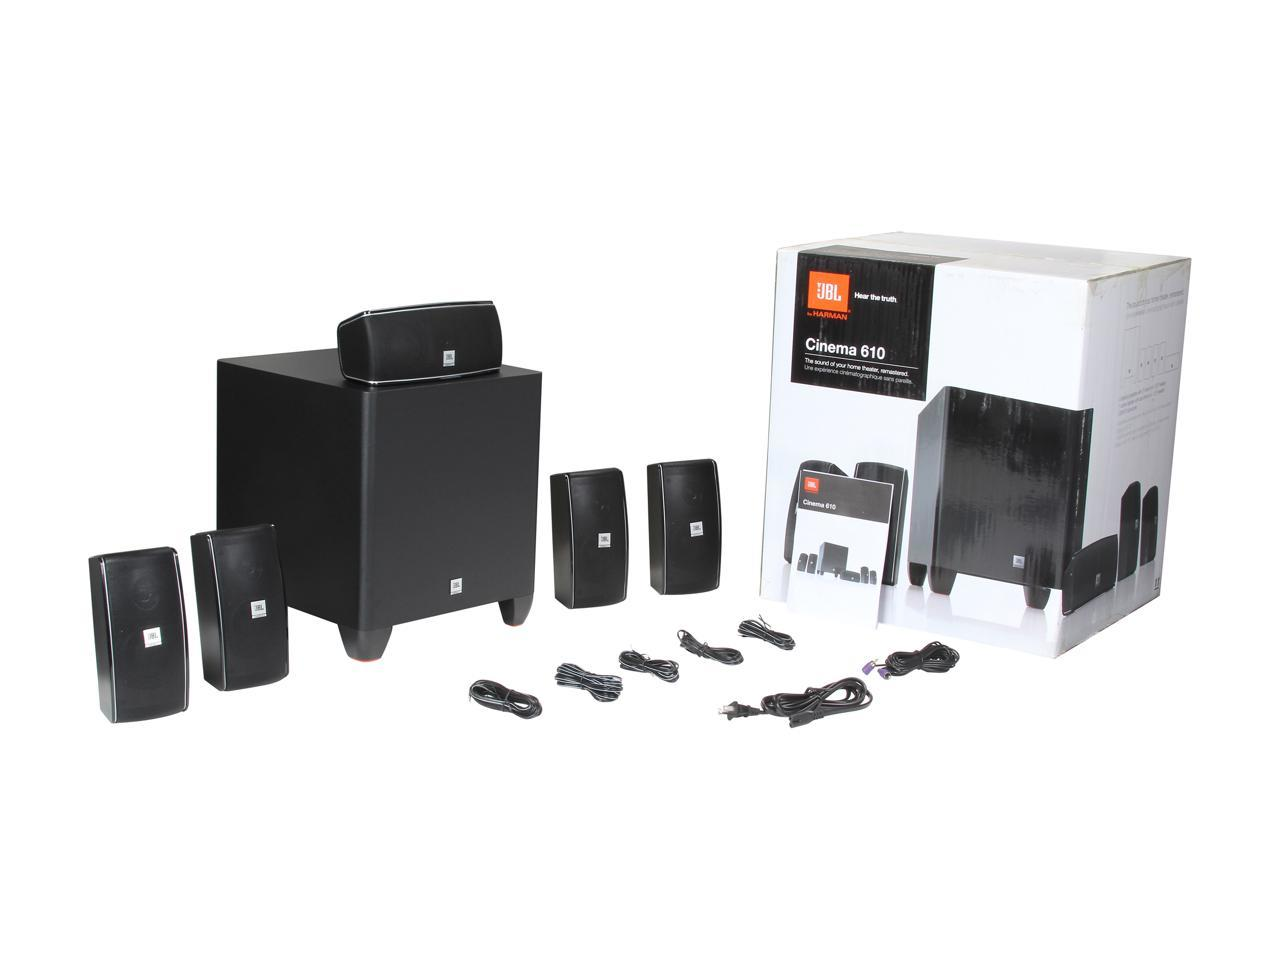 JBL Cinema 610 5.1 CH Home Theater Speakers System with Powered Subwoofer  and Dedicated Center Speaker - Newegg.com